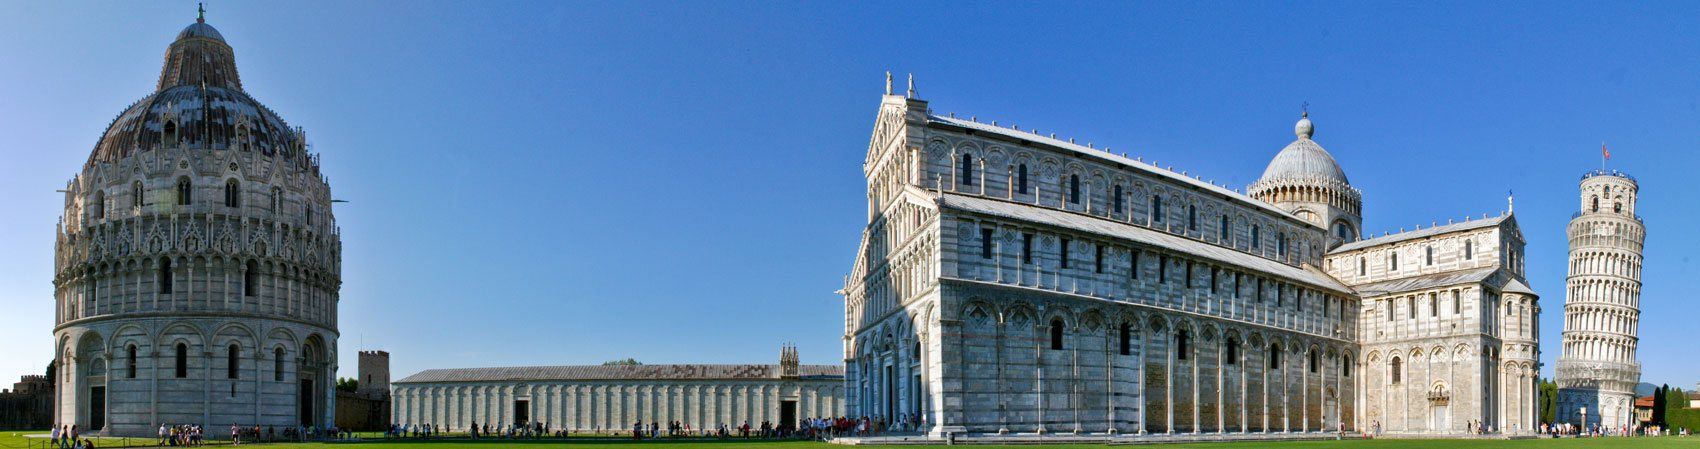 The Leaning Tower of Pisa and the Square of Miracles